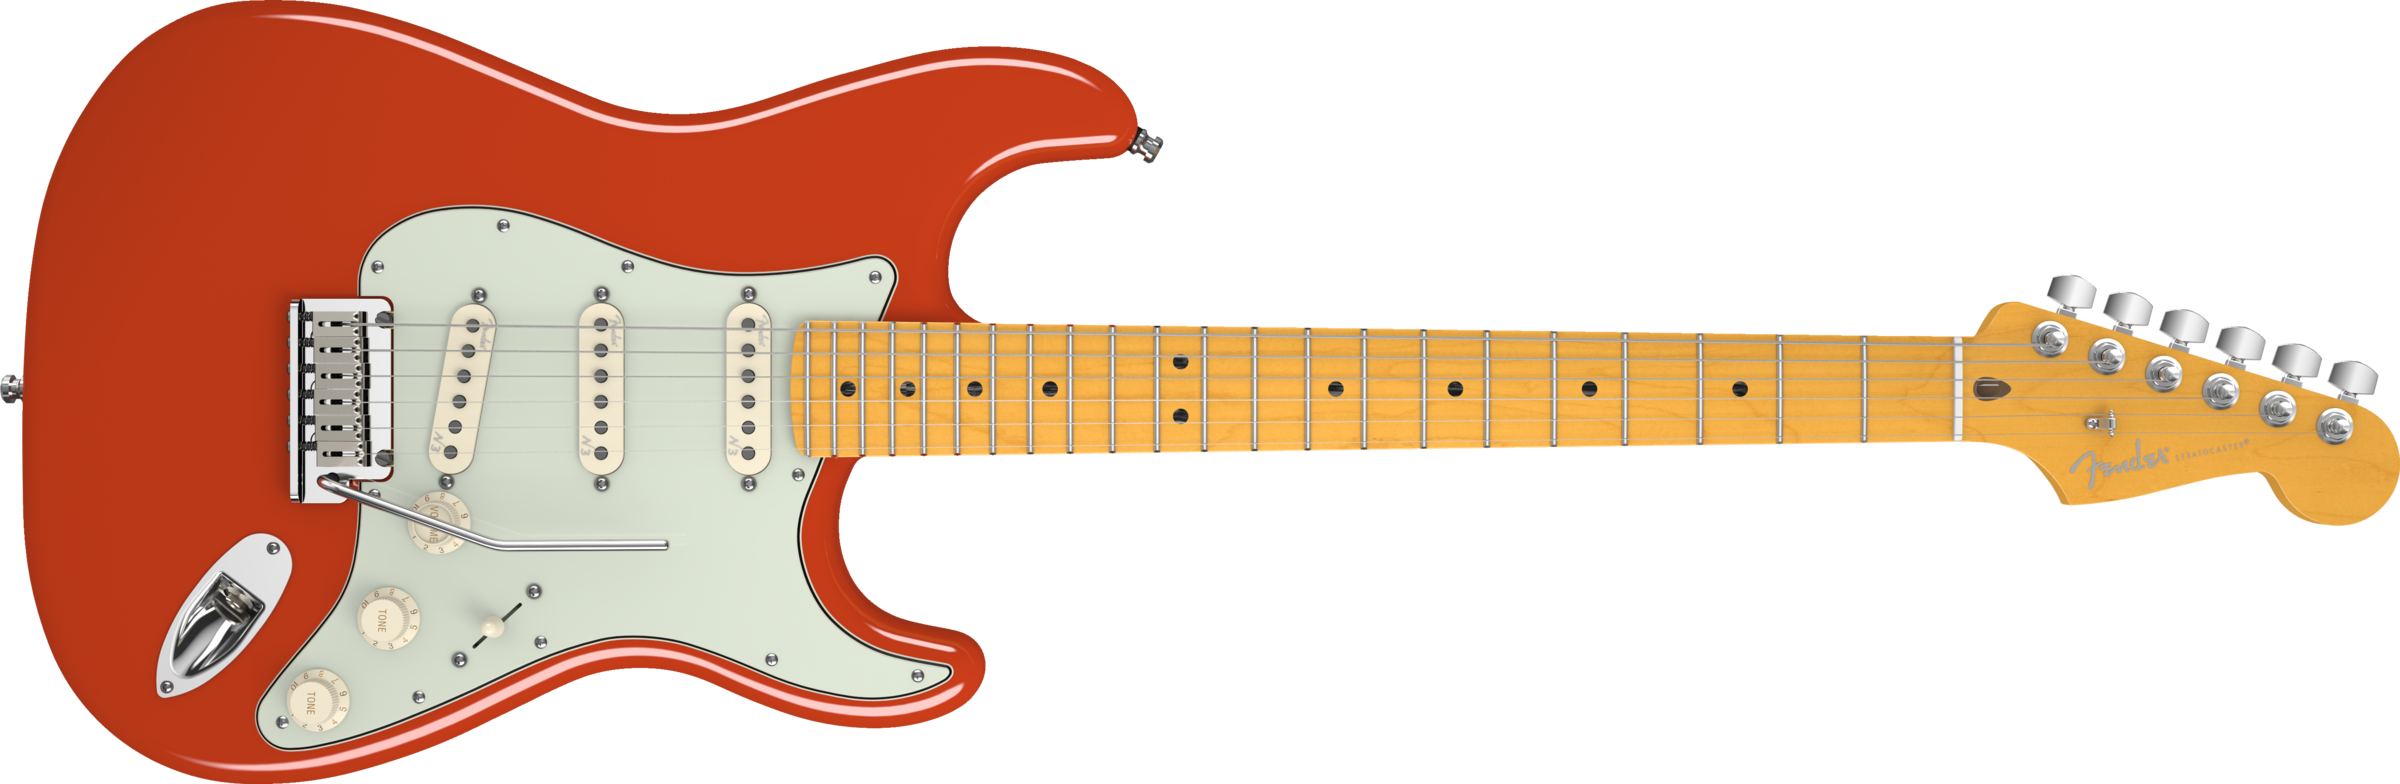 png royalty free stock American deluxe stratocaster v. Guitar clipart fiesta